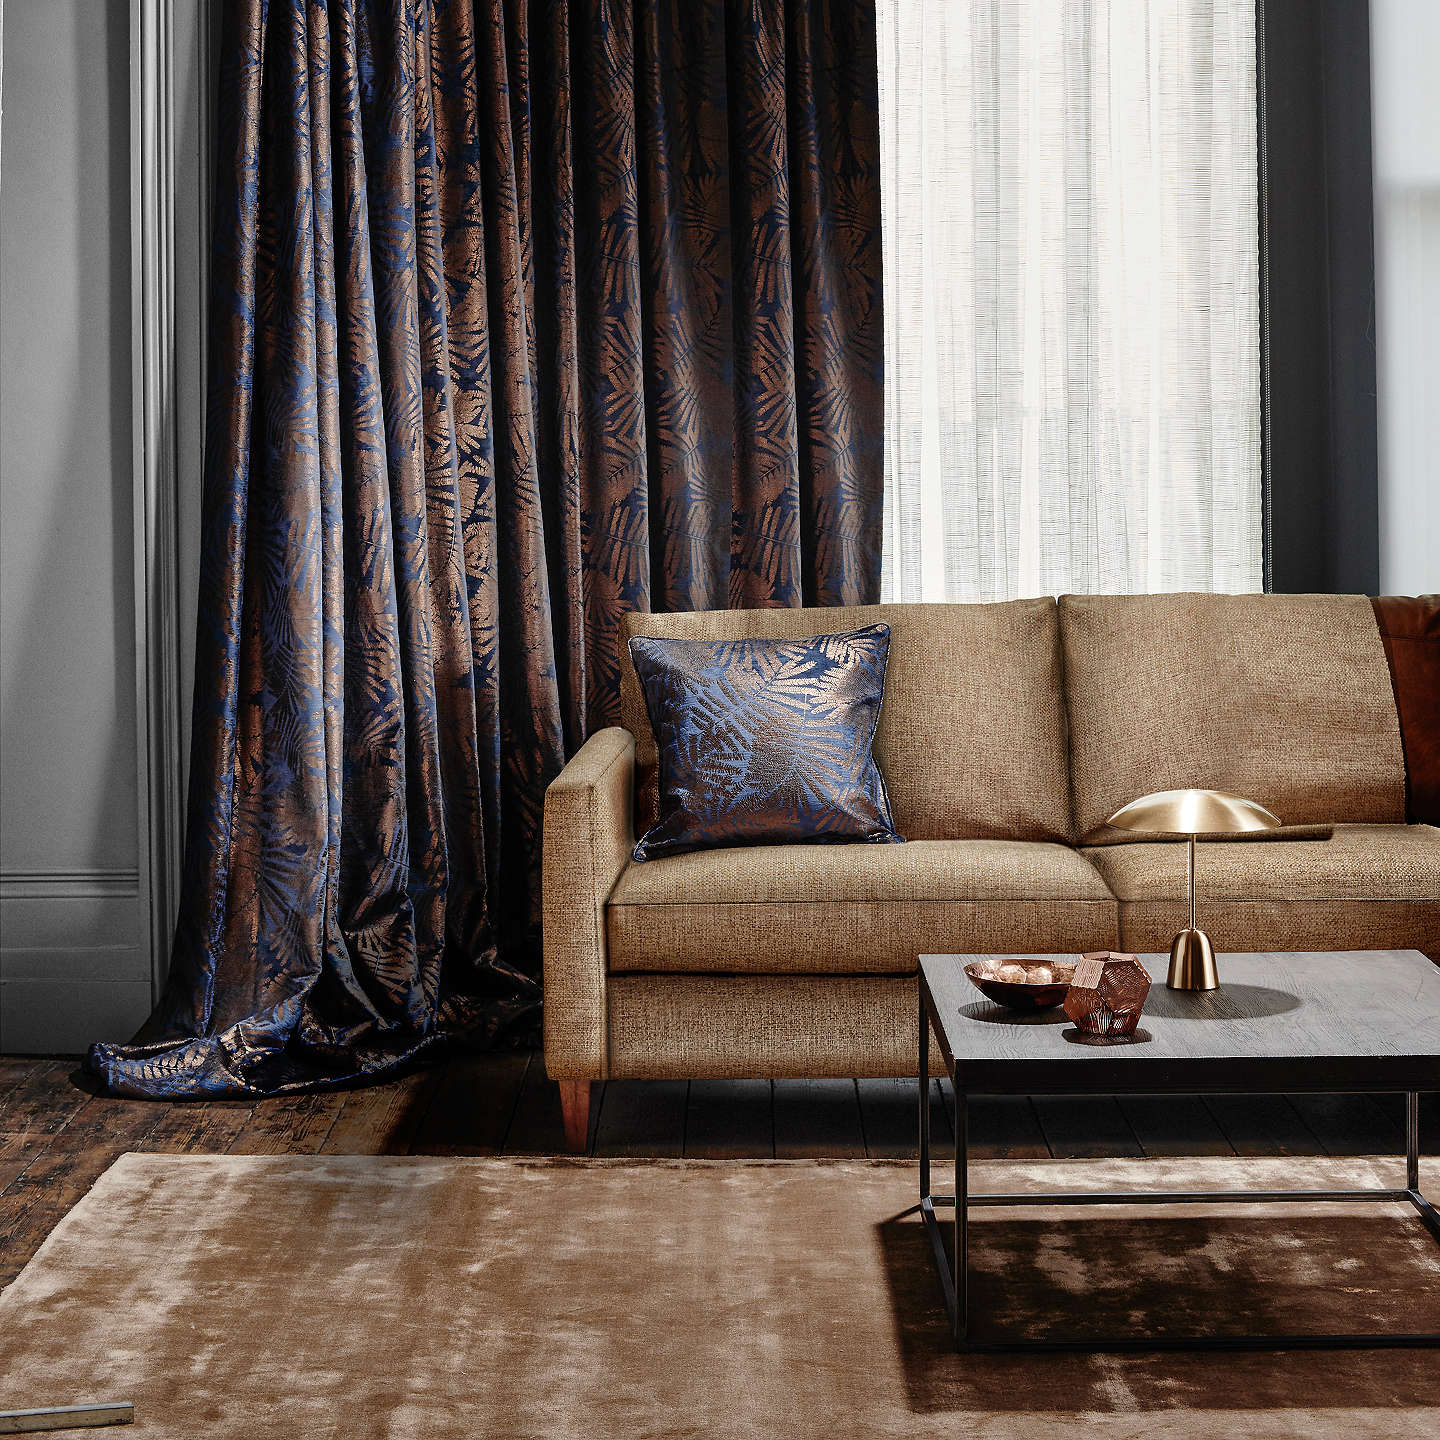 BuyDesign Project by John Lewis No.053 LED Table Lamp, Satin Brass Online at johnlewis.com